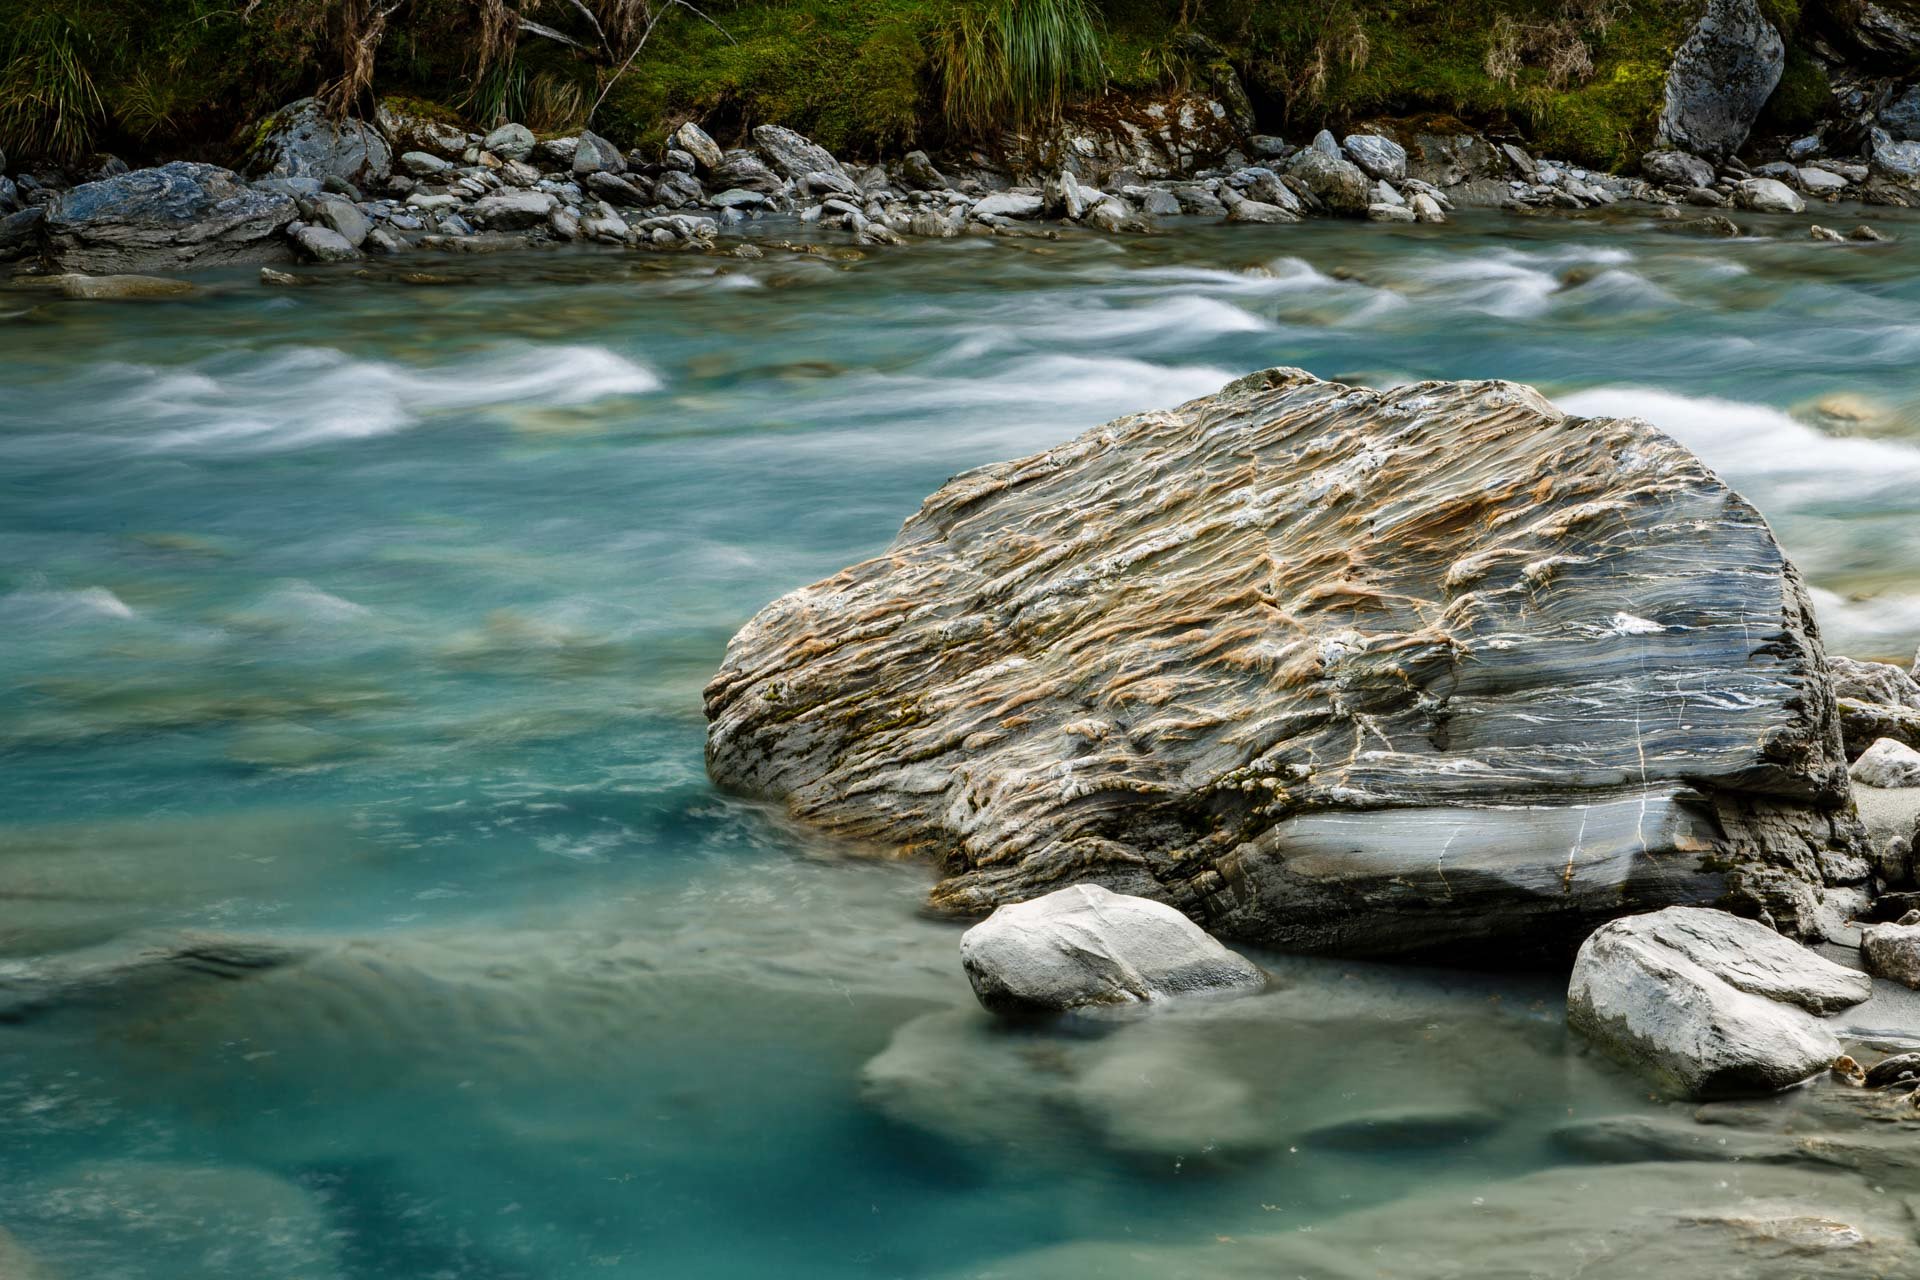 queenstown landscape river wth large rock photographed with slow shutter speed to blur water flowing in river